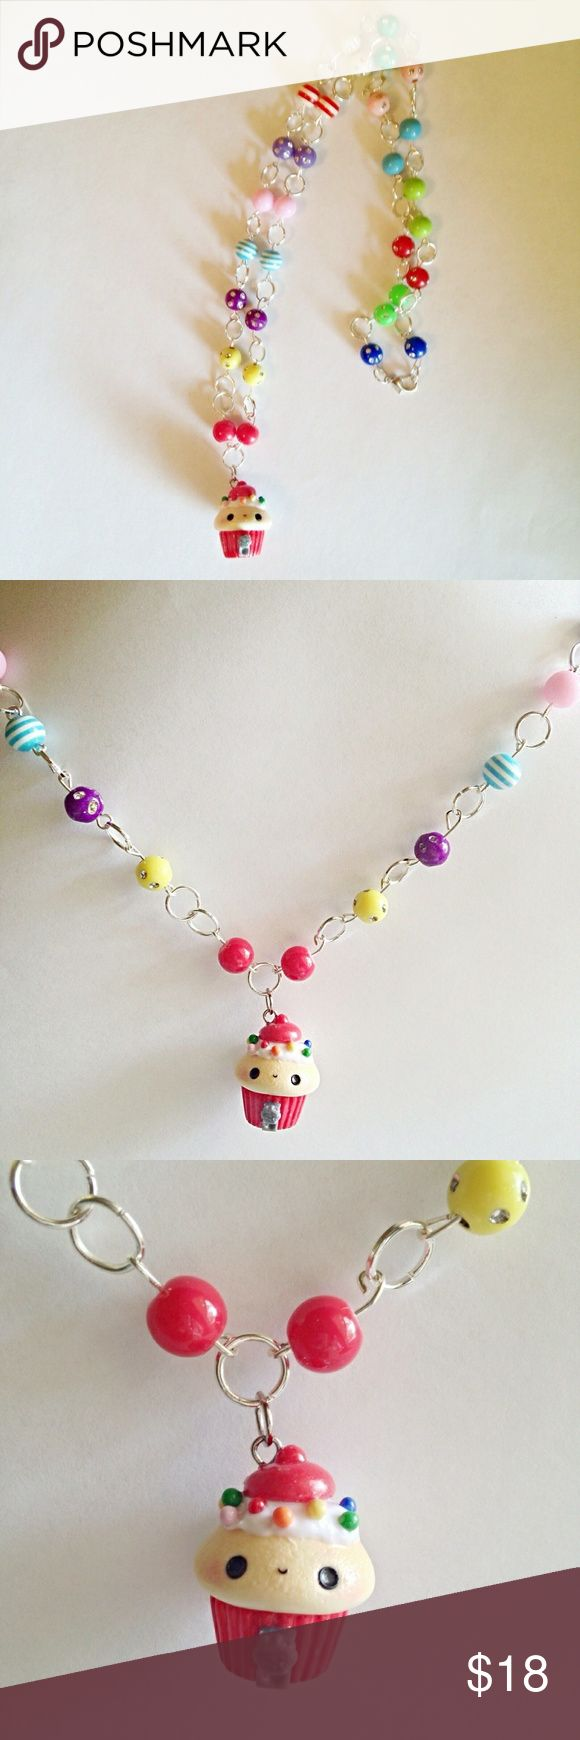 Handcrafted Kawaii Bubble Gum Machine Necklace This is an adorable Kawaii Polymer Clay Bubble Gum Machine Cupcake Beaded Link Necklace! What a perfect gift for that special child! This necklace measures a little over 12-inches in length and features a cute kawaii polymer clay multi-colored bubble gum machine cupcake charm. The necklace is dressed in multi-colored beads, such as red, blue, green, yellow, etc. bling rhinestone beads. In addition to the bling beads, several swirl and…